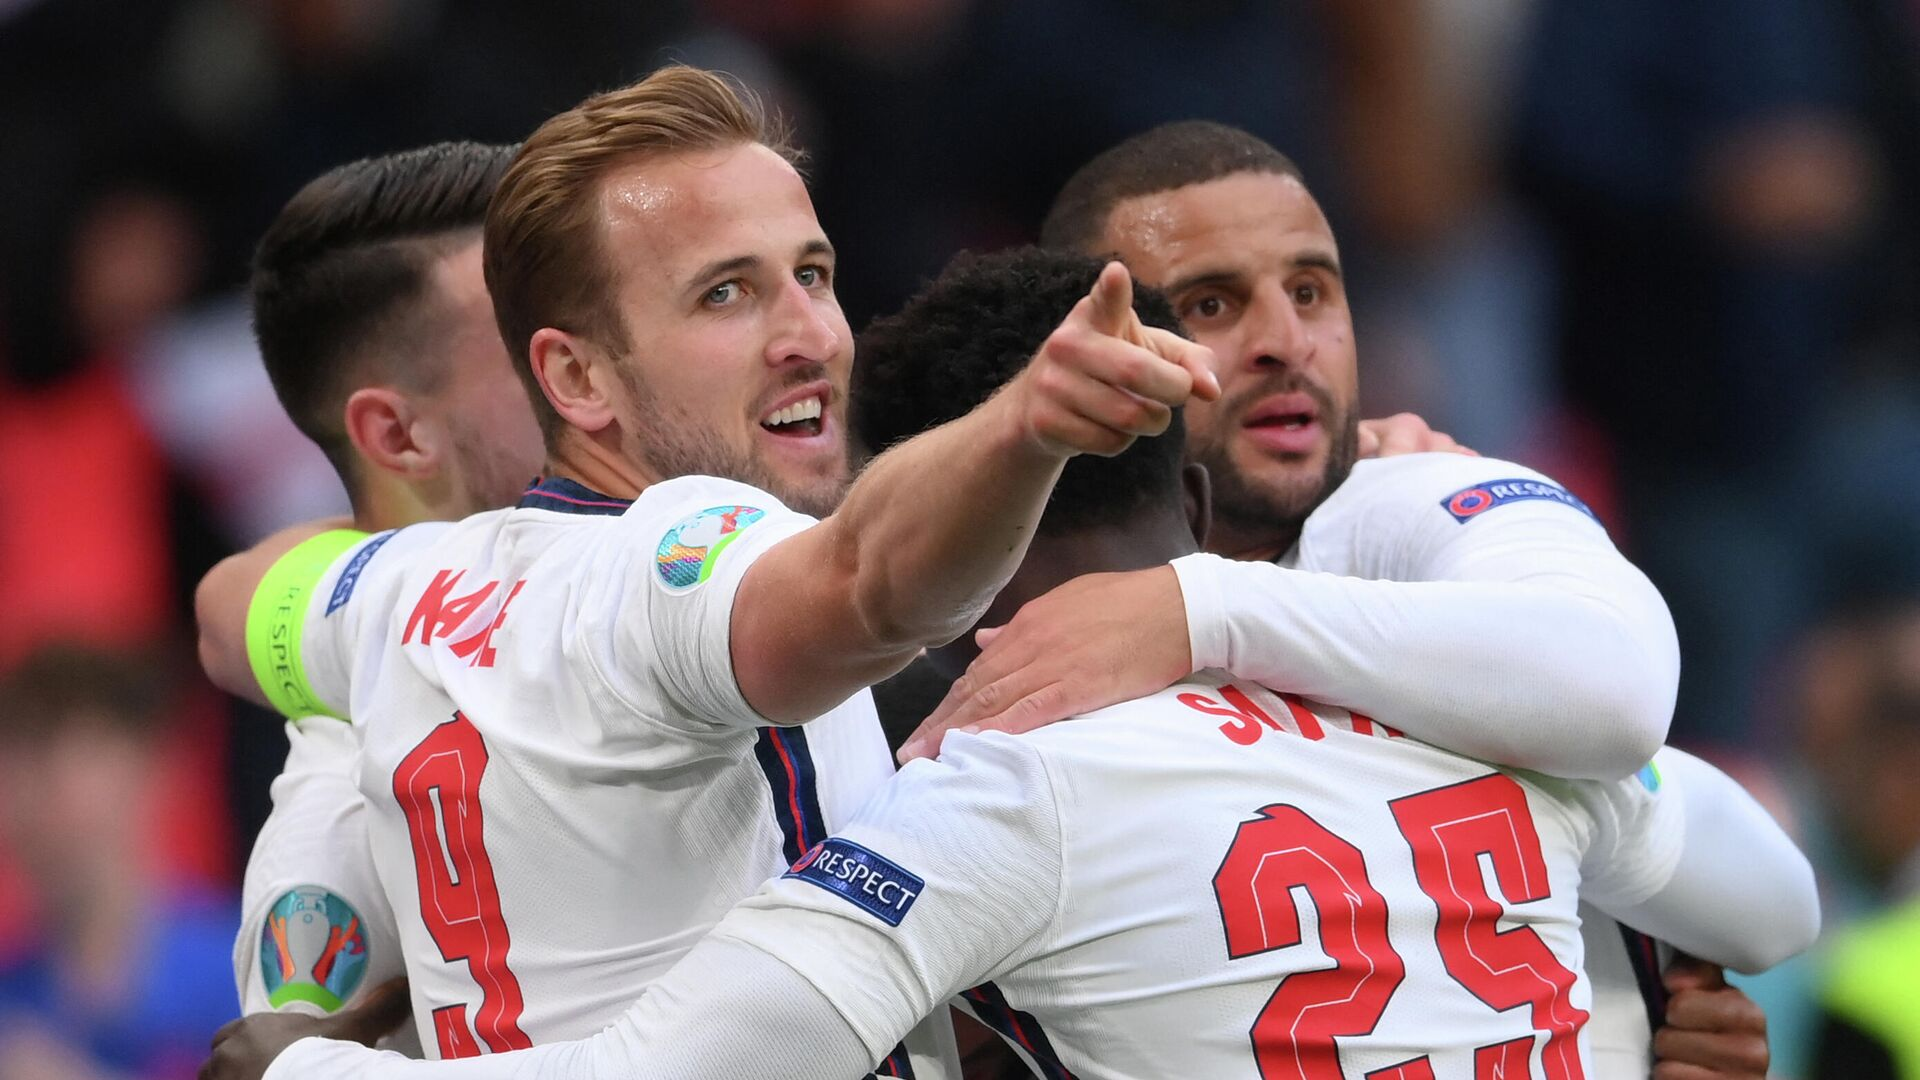 England's forward Raheem Sterling (hidden) celebrates scoring the opening goal with his teammates including England's forward Harry Kane, England's midfielder Bukayo Saka and England's defender Kyle Walker during the UEFA EURO 2020 Group D football match between Czech Republic and England at Wembley Stadium in London on June 22, 2021. (Photo by Laurence Griffiths / POOL / AFP) - РИА Новости, 1920, 22.06.2021